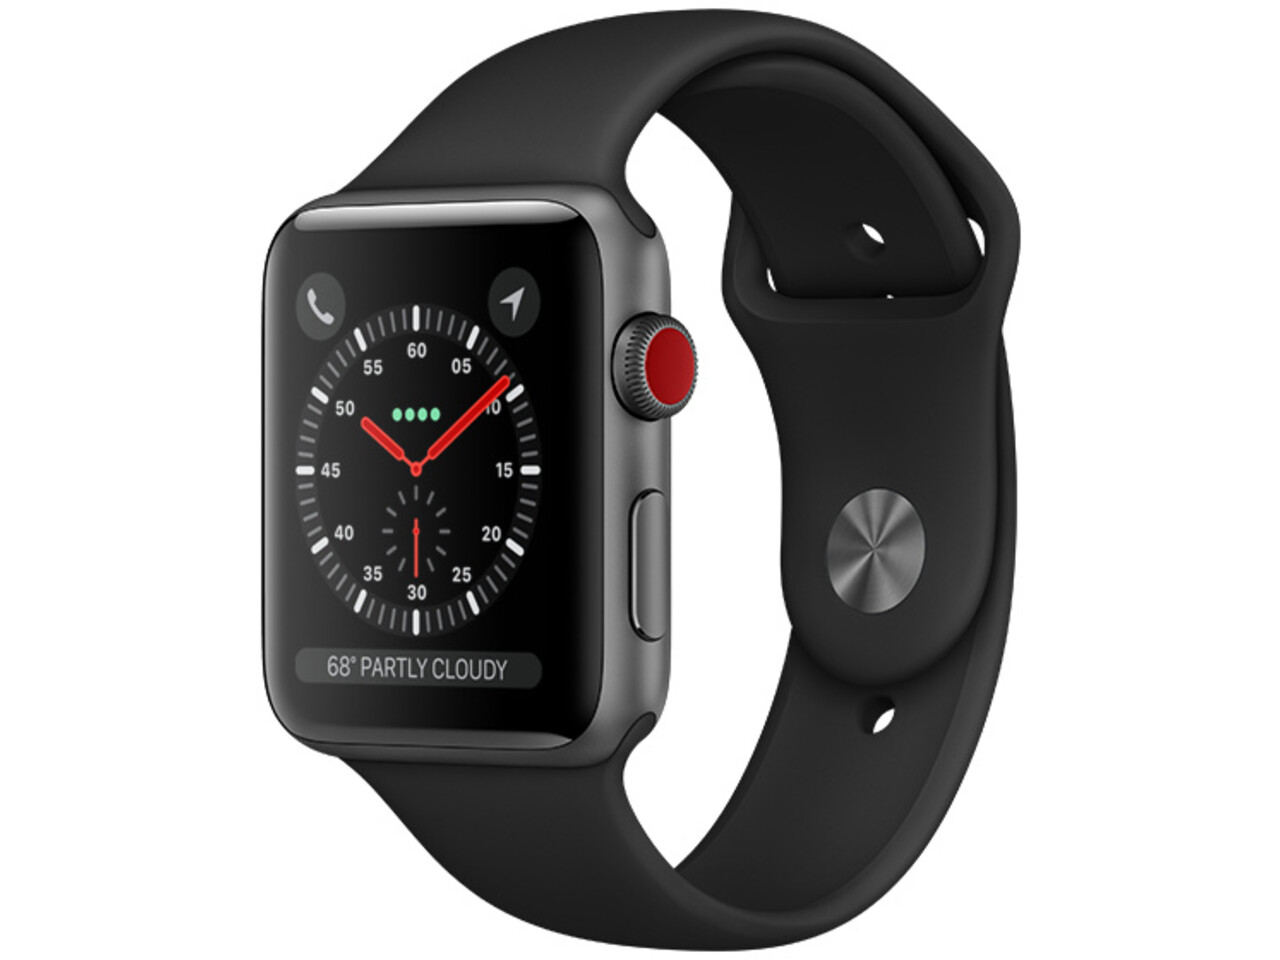 apple watch series 3 cellular 42mm space gray aluminum black sport band